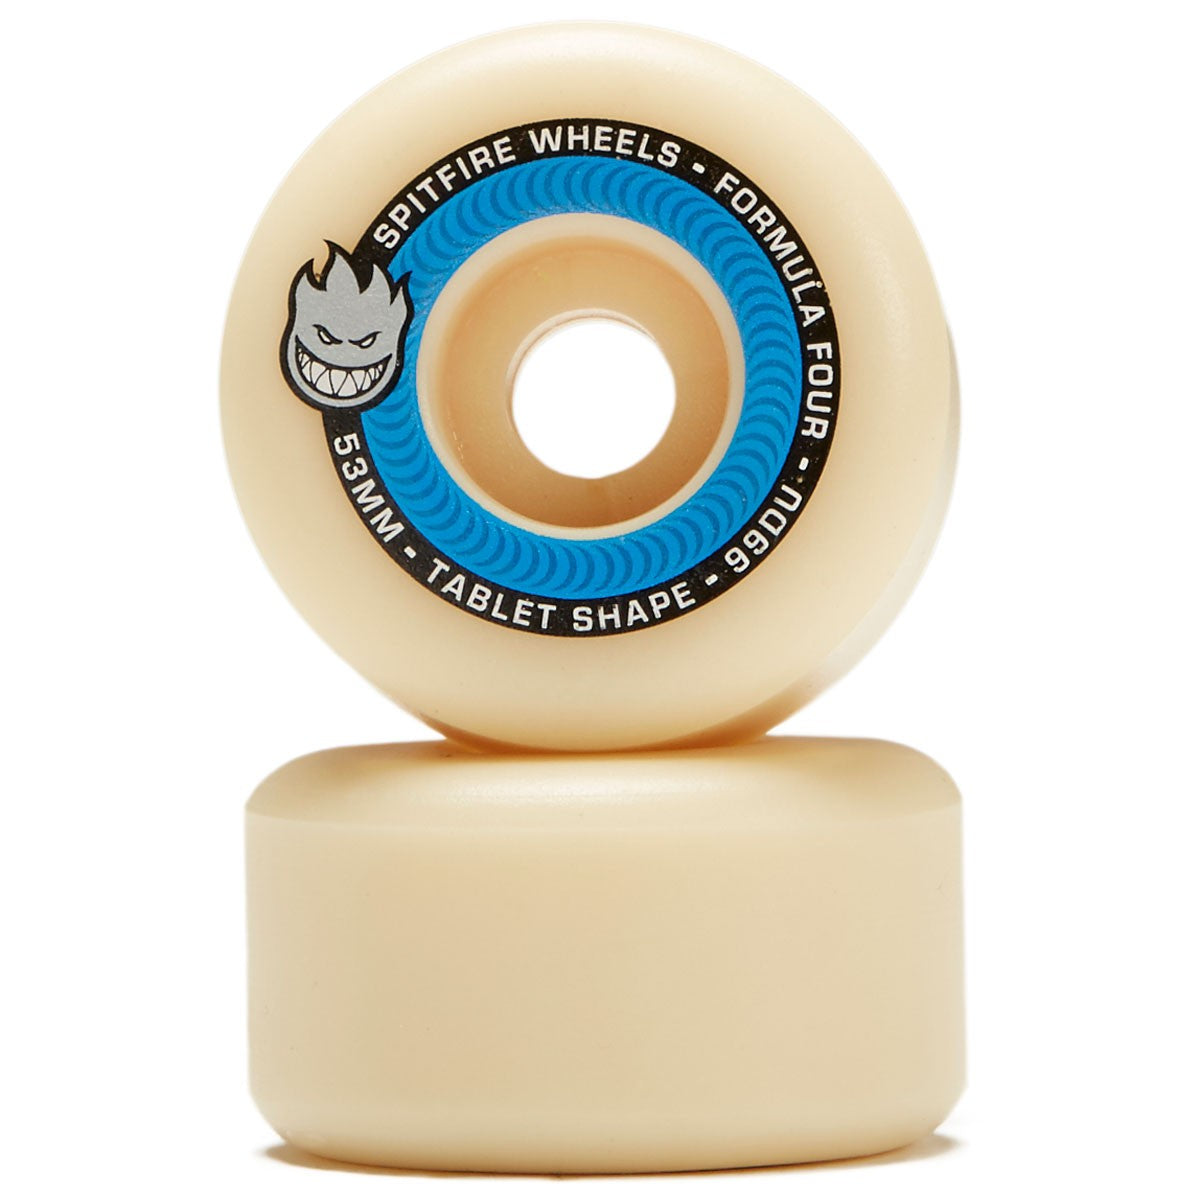 Spitfire Wheels Formula Four Tablet 53mm 99d